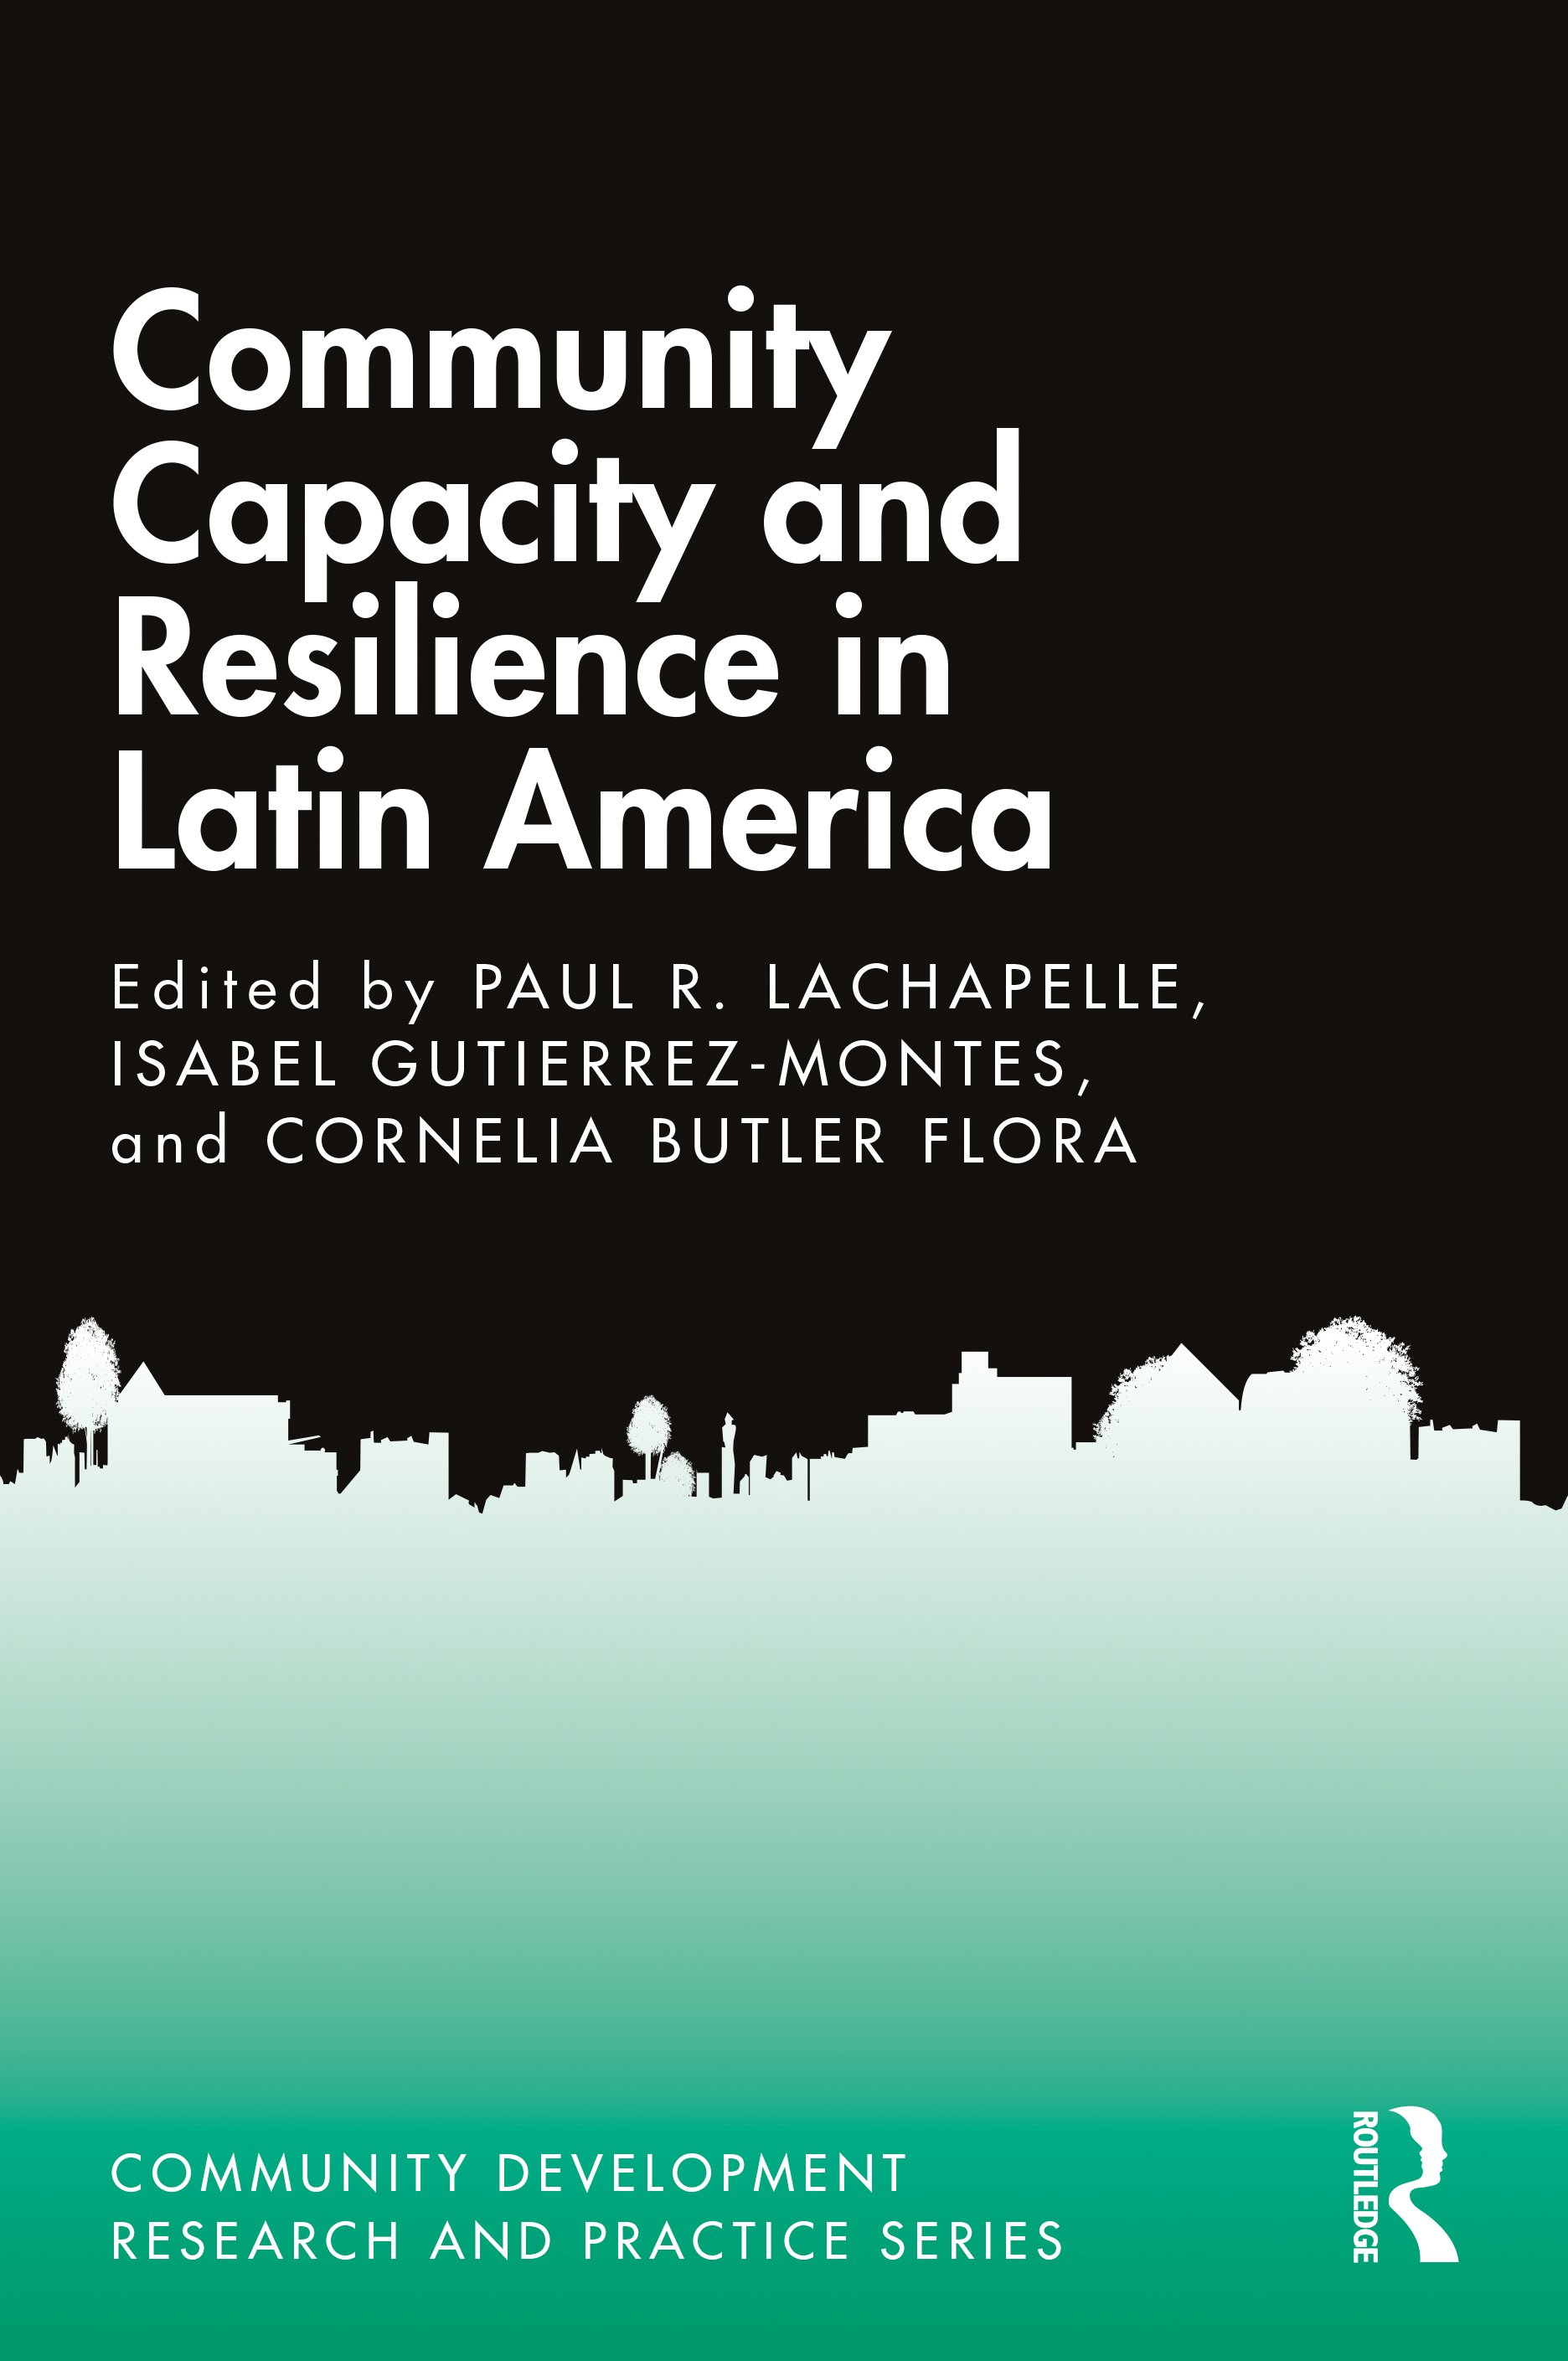 Community Capacity and Resilience in Latin America book cover